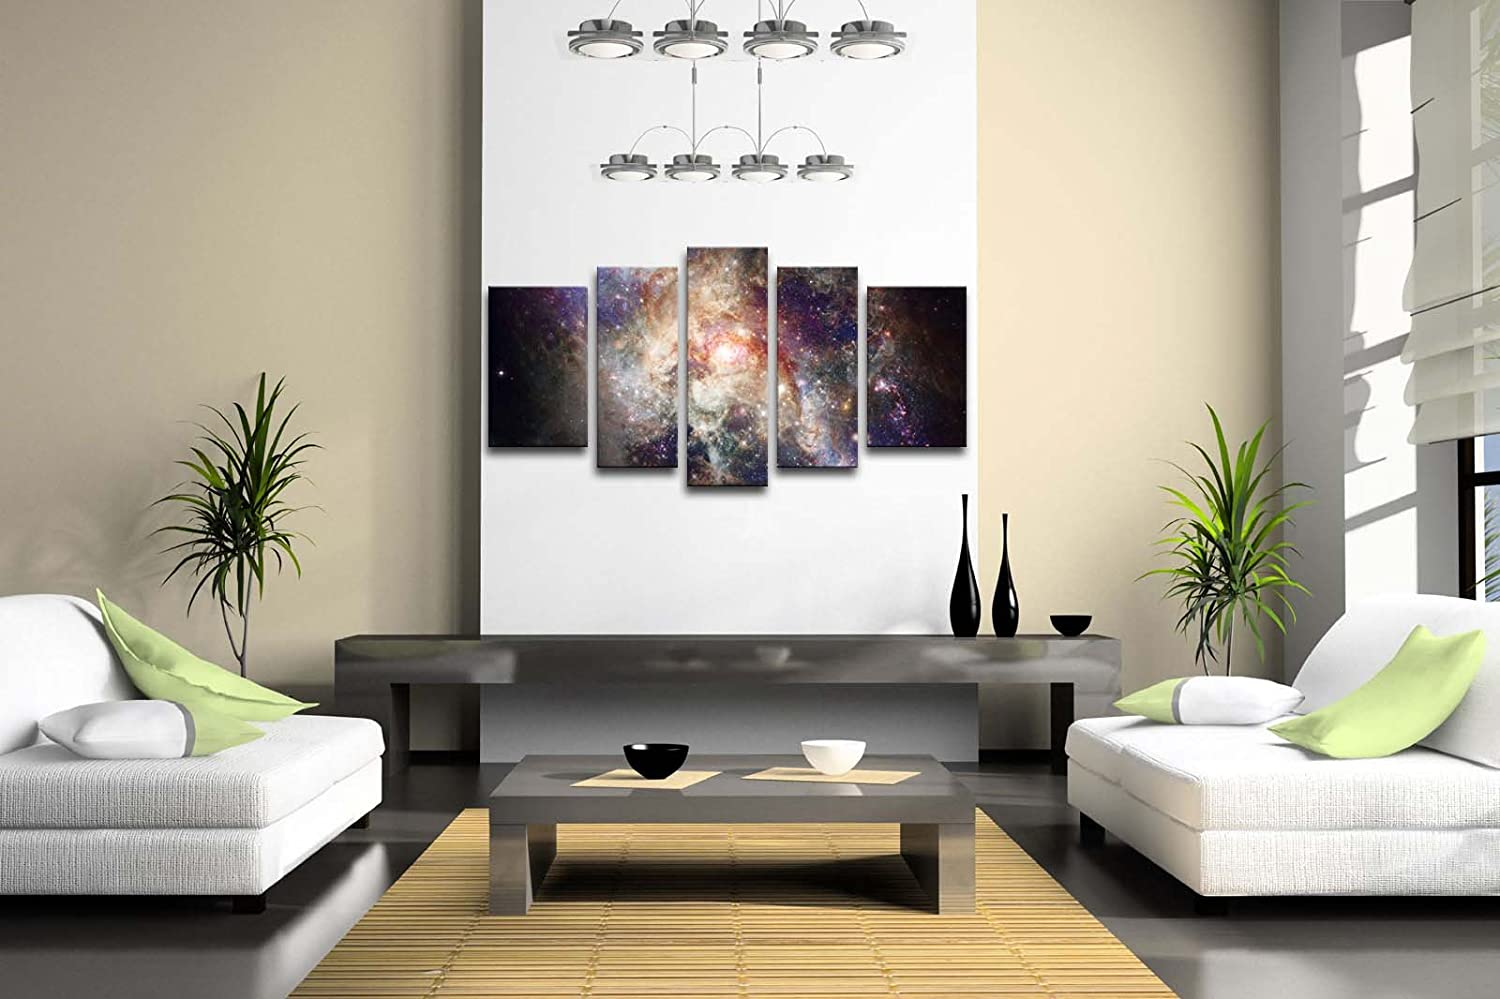 Amazon.com: 5 Panel Wall Art Star Field In Space And A Nebulae ...